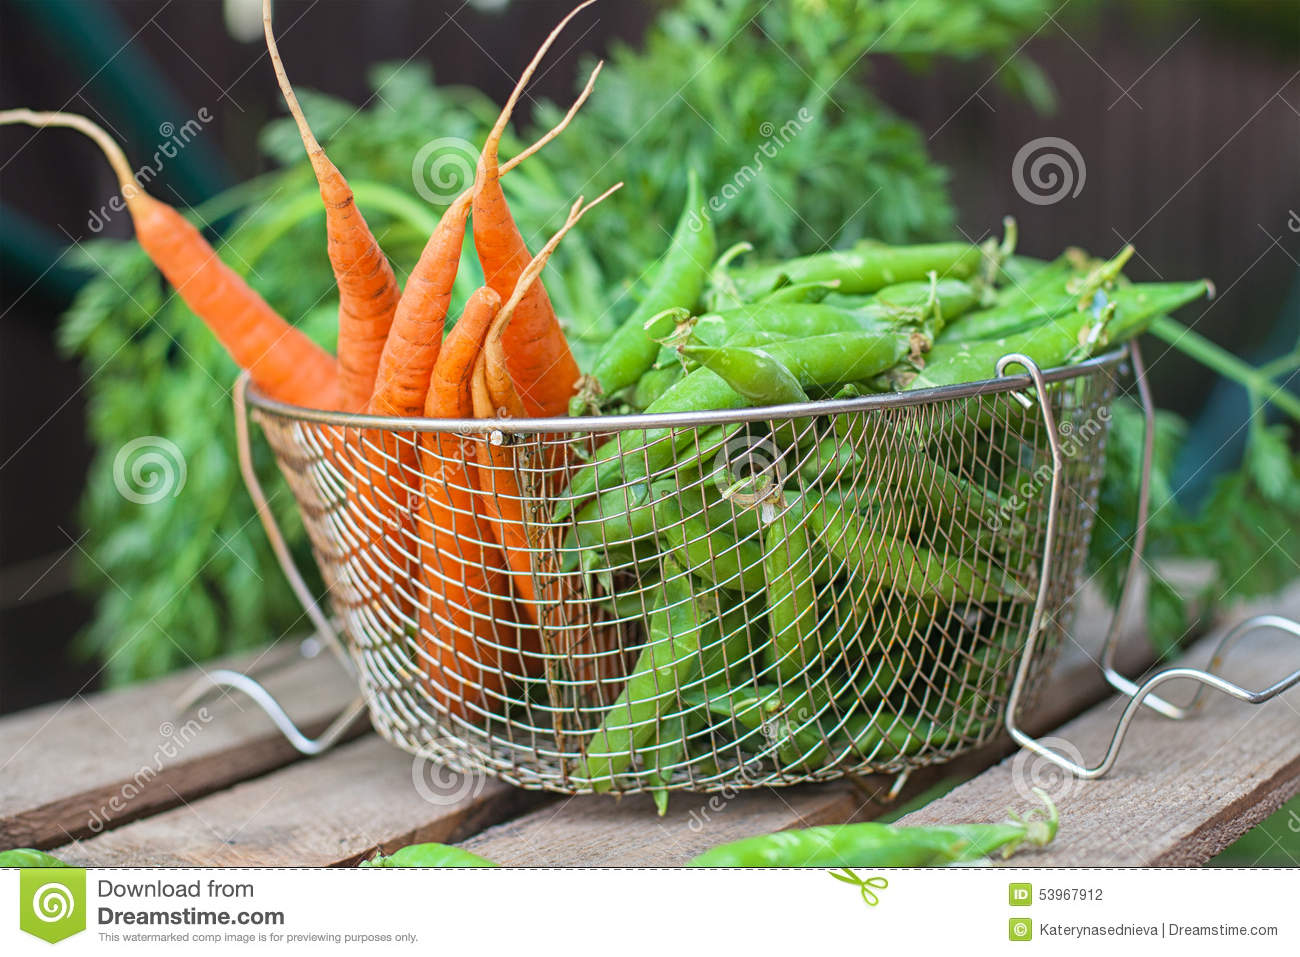 how to cook fresh peas and carrots